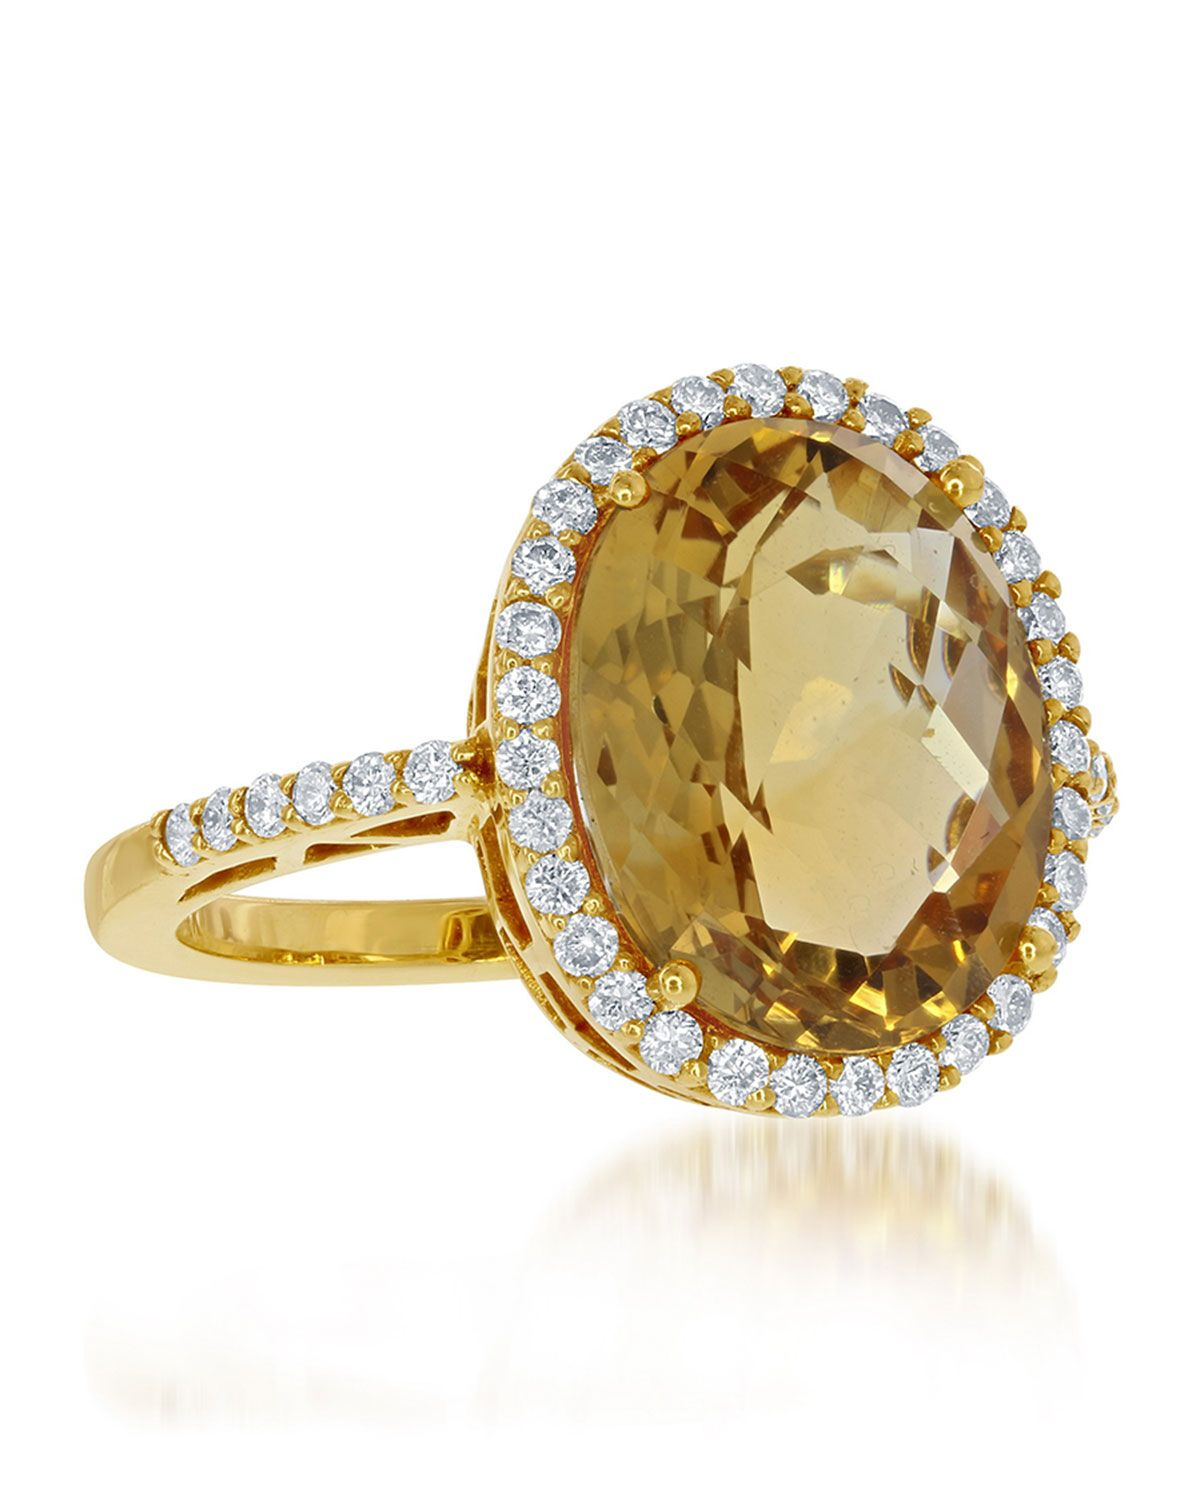 Diana M. Jewels 14k Yellow Gold Oval Citrine & Diamond Ring, Size 7